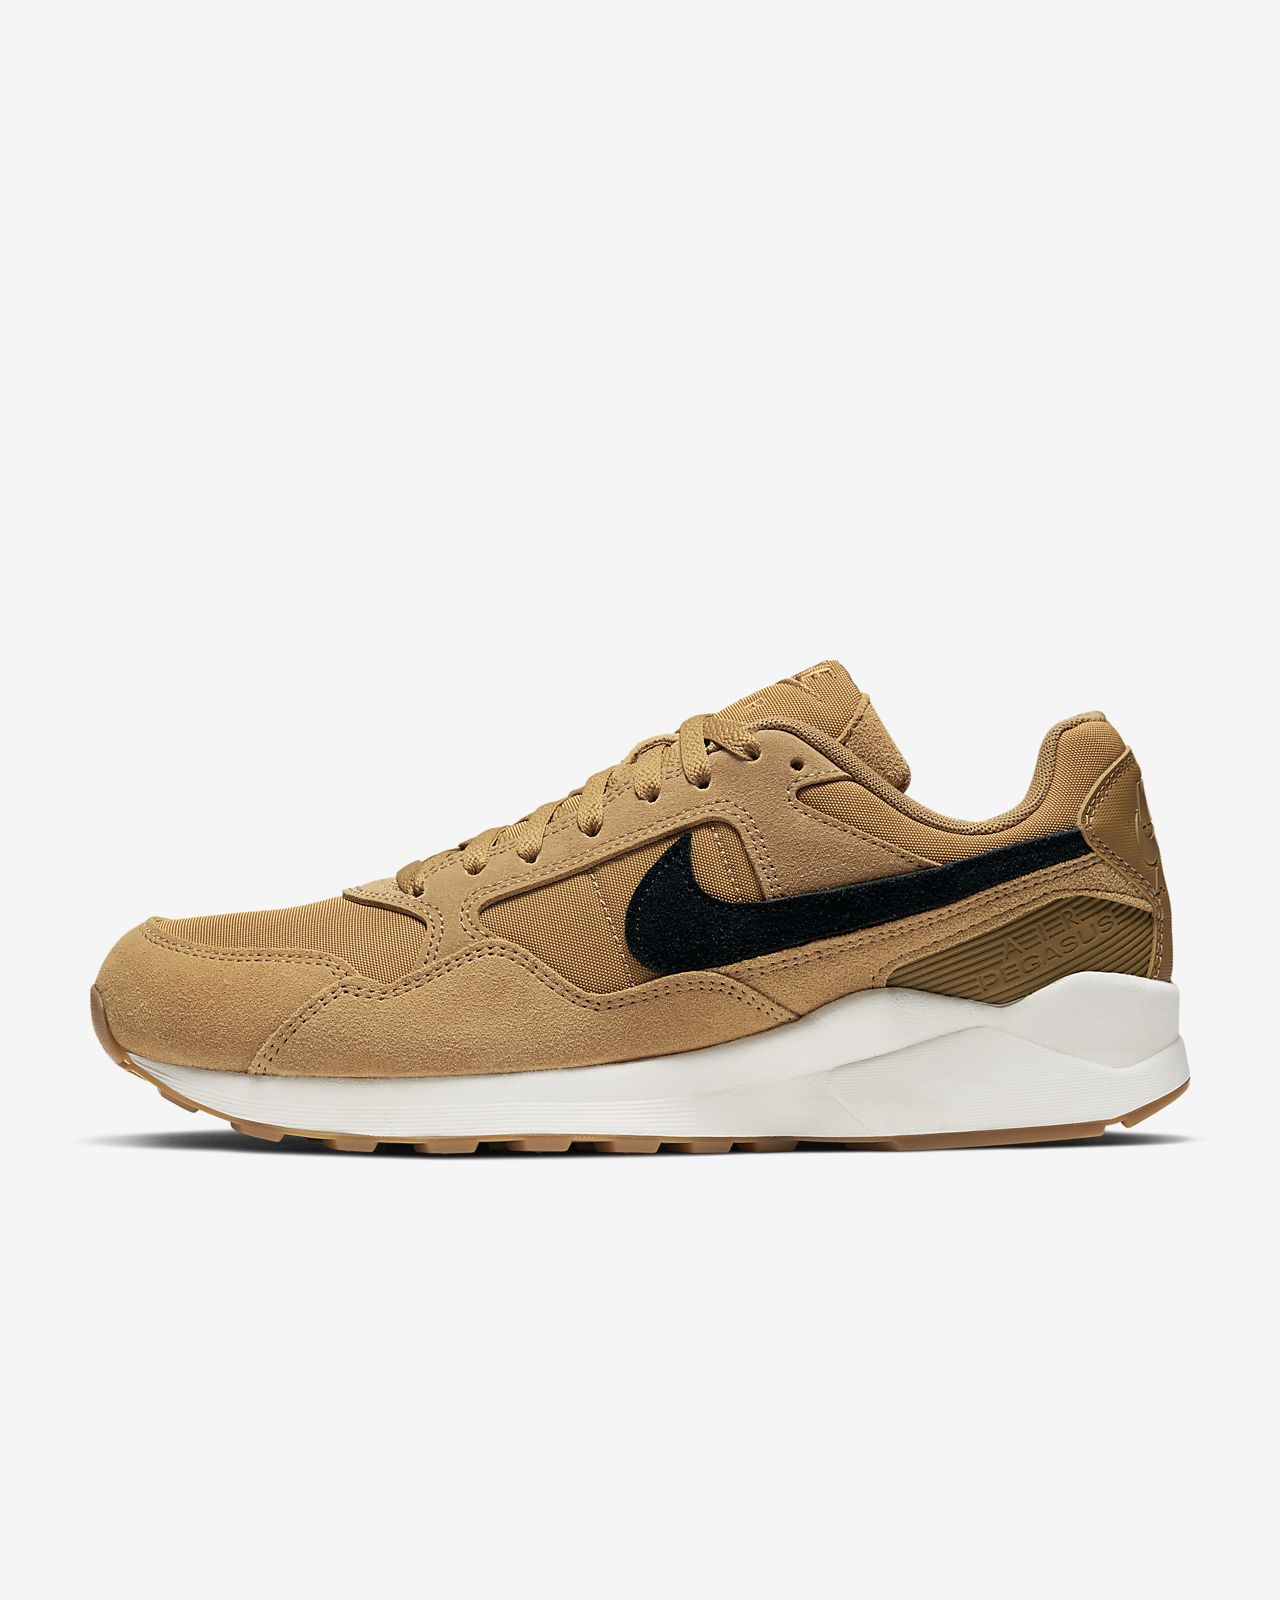 quality reasonably priced finest selection Chaussure Nike Air Pegasus 92 Lite SE pour Homme